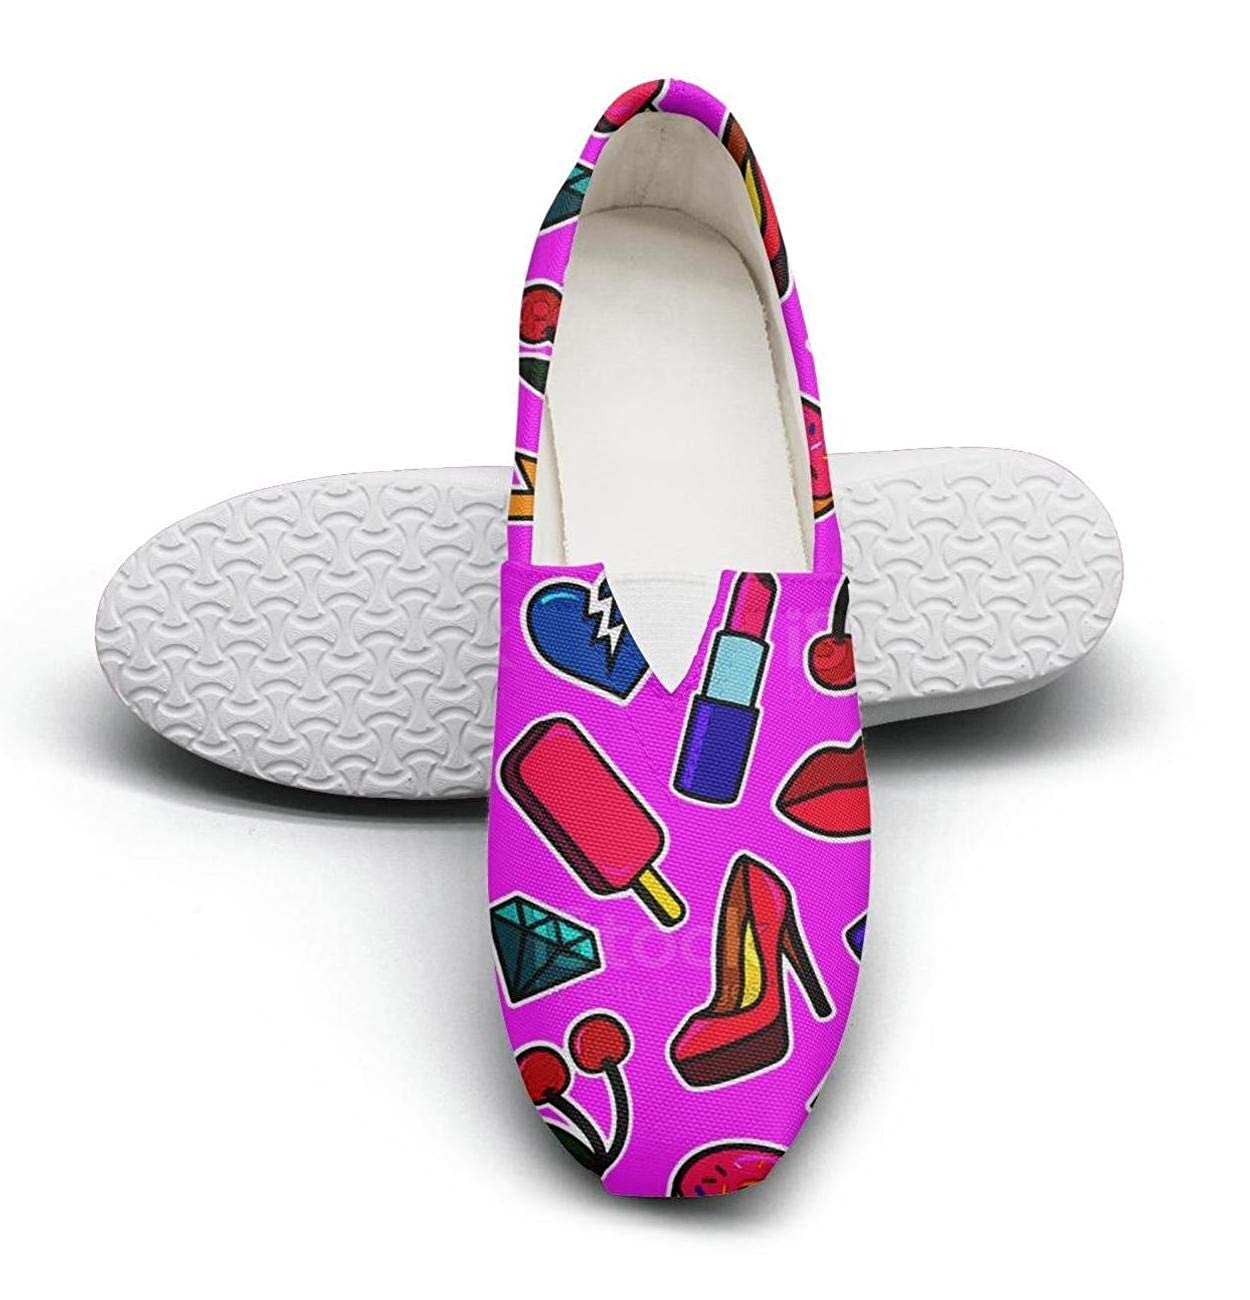 Orange Chocolate Glazed Donut Womens Cloth Shoes for Womens Customize Comfortable and Lightweight